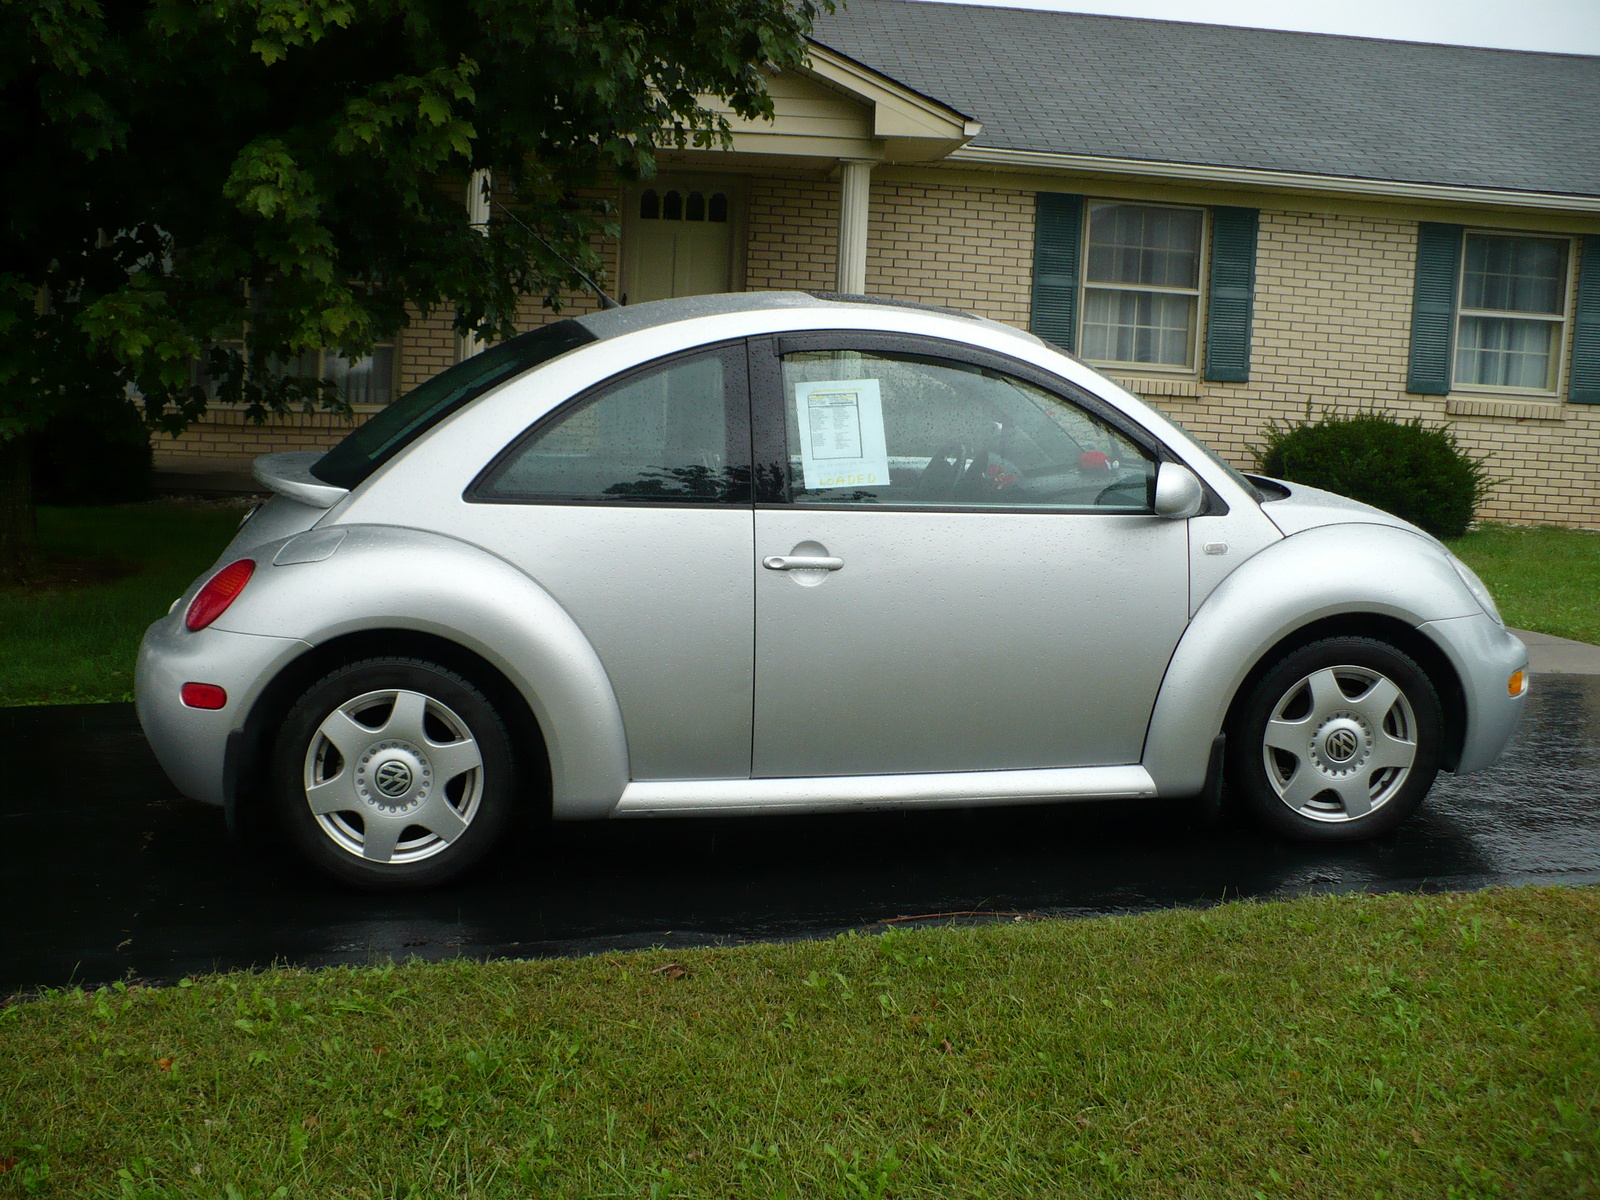 2001 volkswagen beetle exterior pictures cargurus. Black Bedroom Furniture Sets. Home Design Ideas